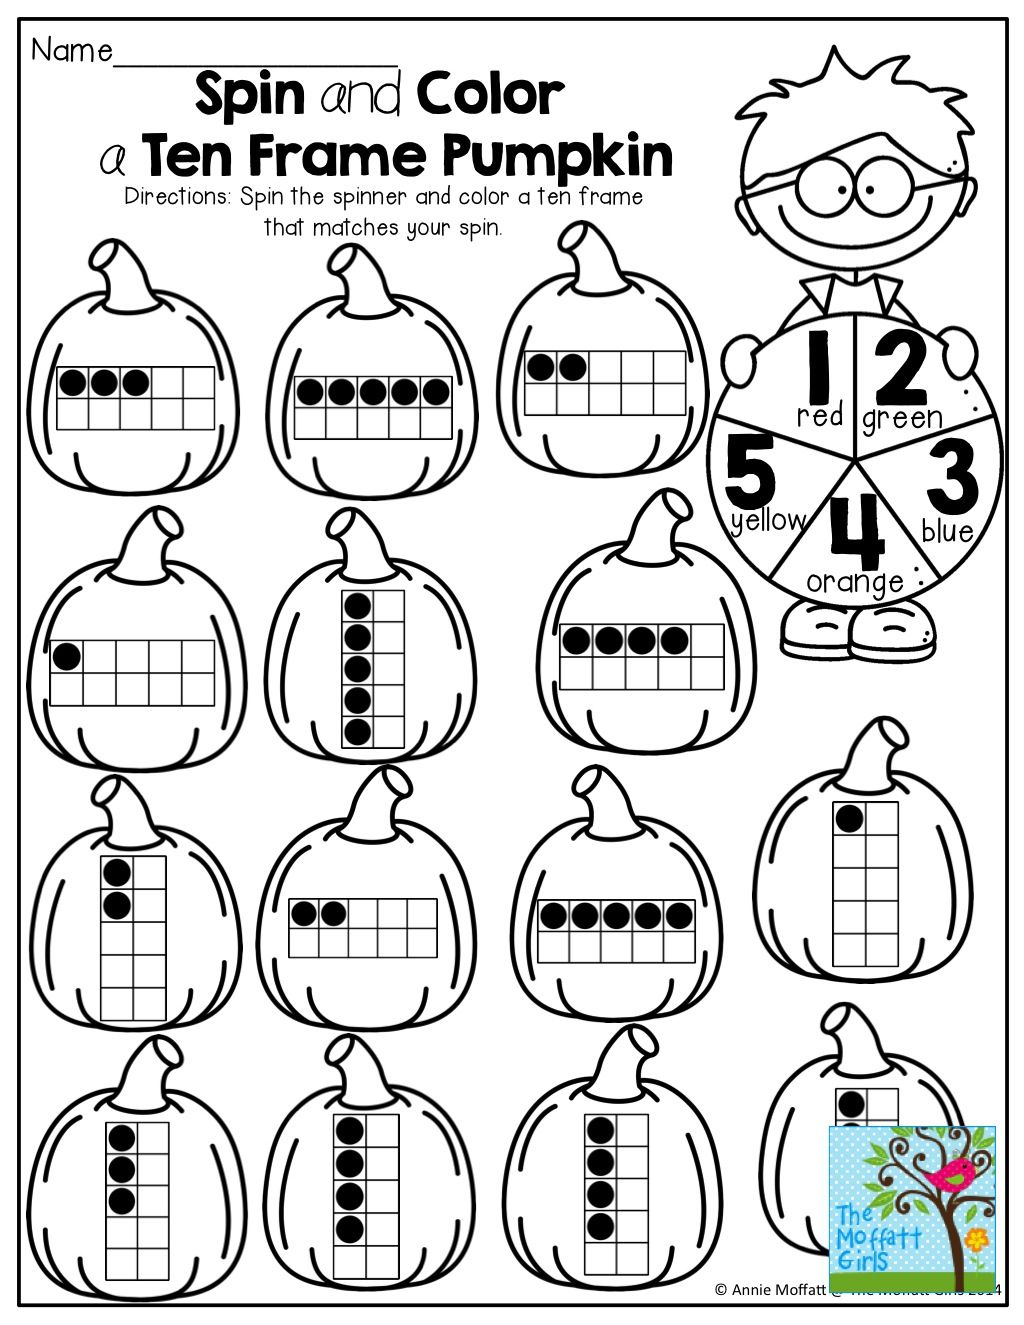 Spin The Spinner And Color A Ten Frame To Match Your Spin So Many Fun And Interactive Printables For The Entire M Kindergarten Math Ten Frame First Grade Math